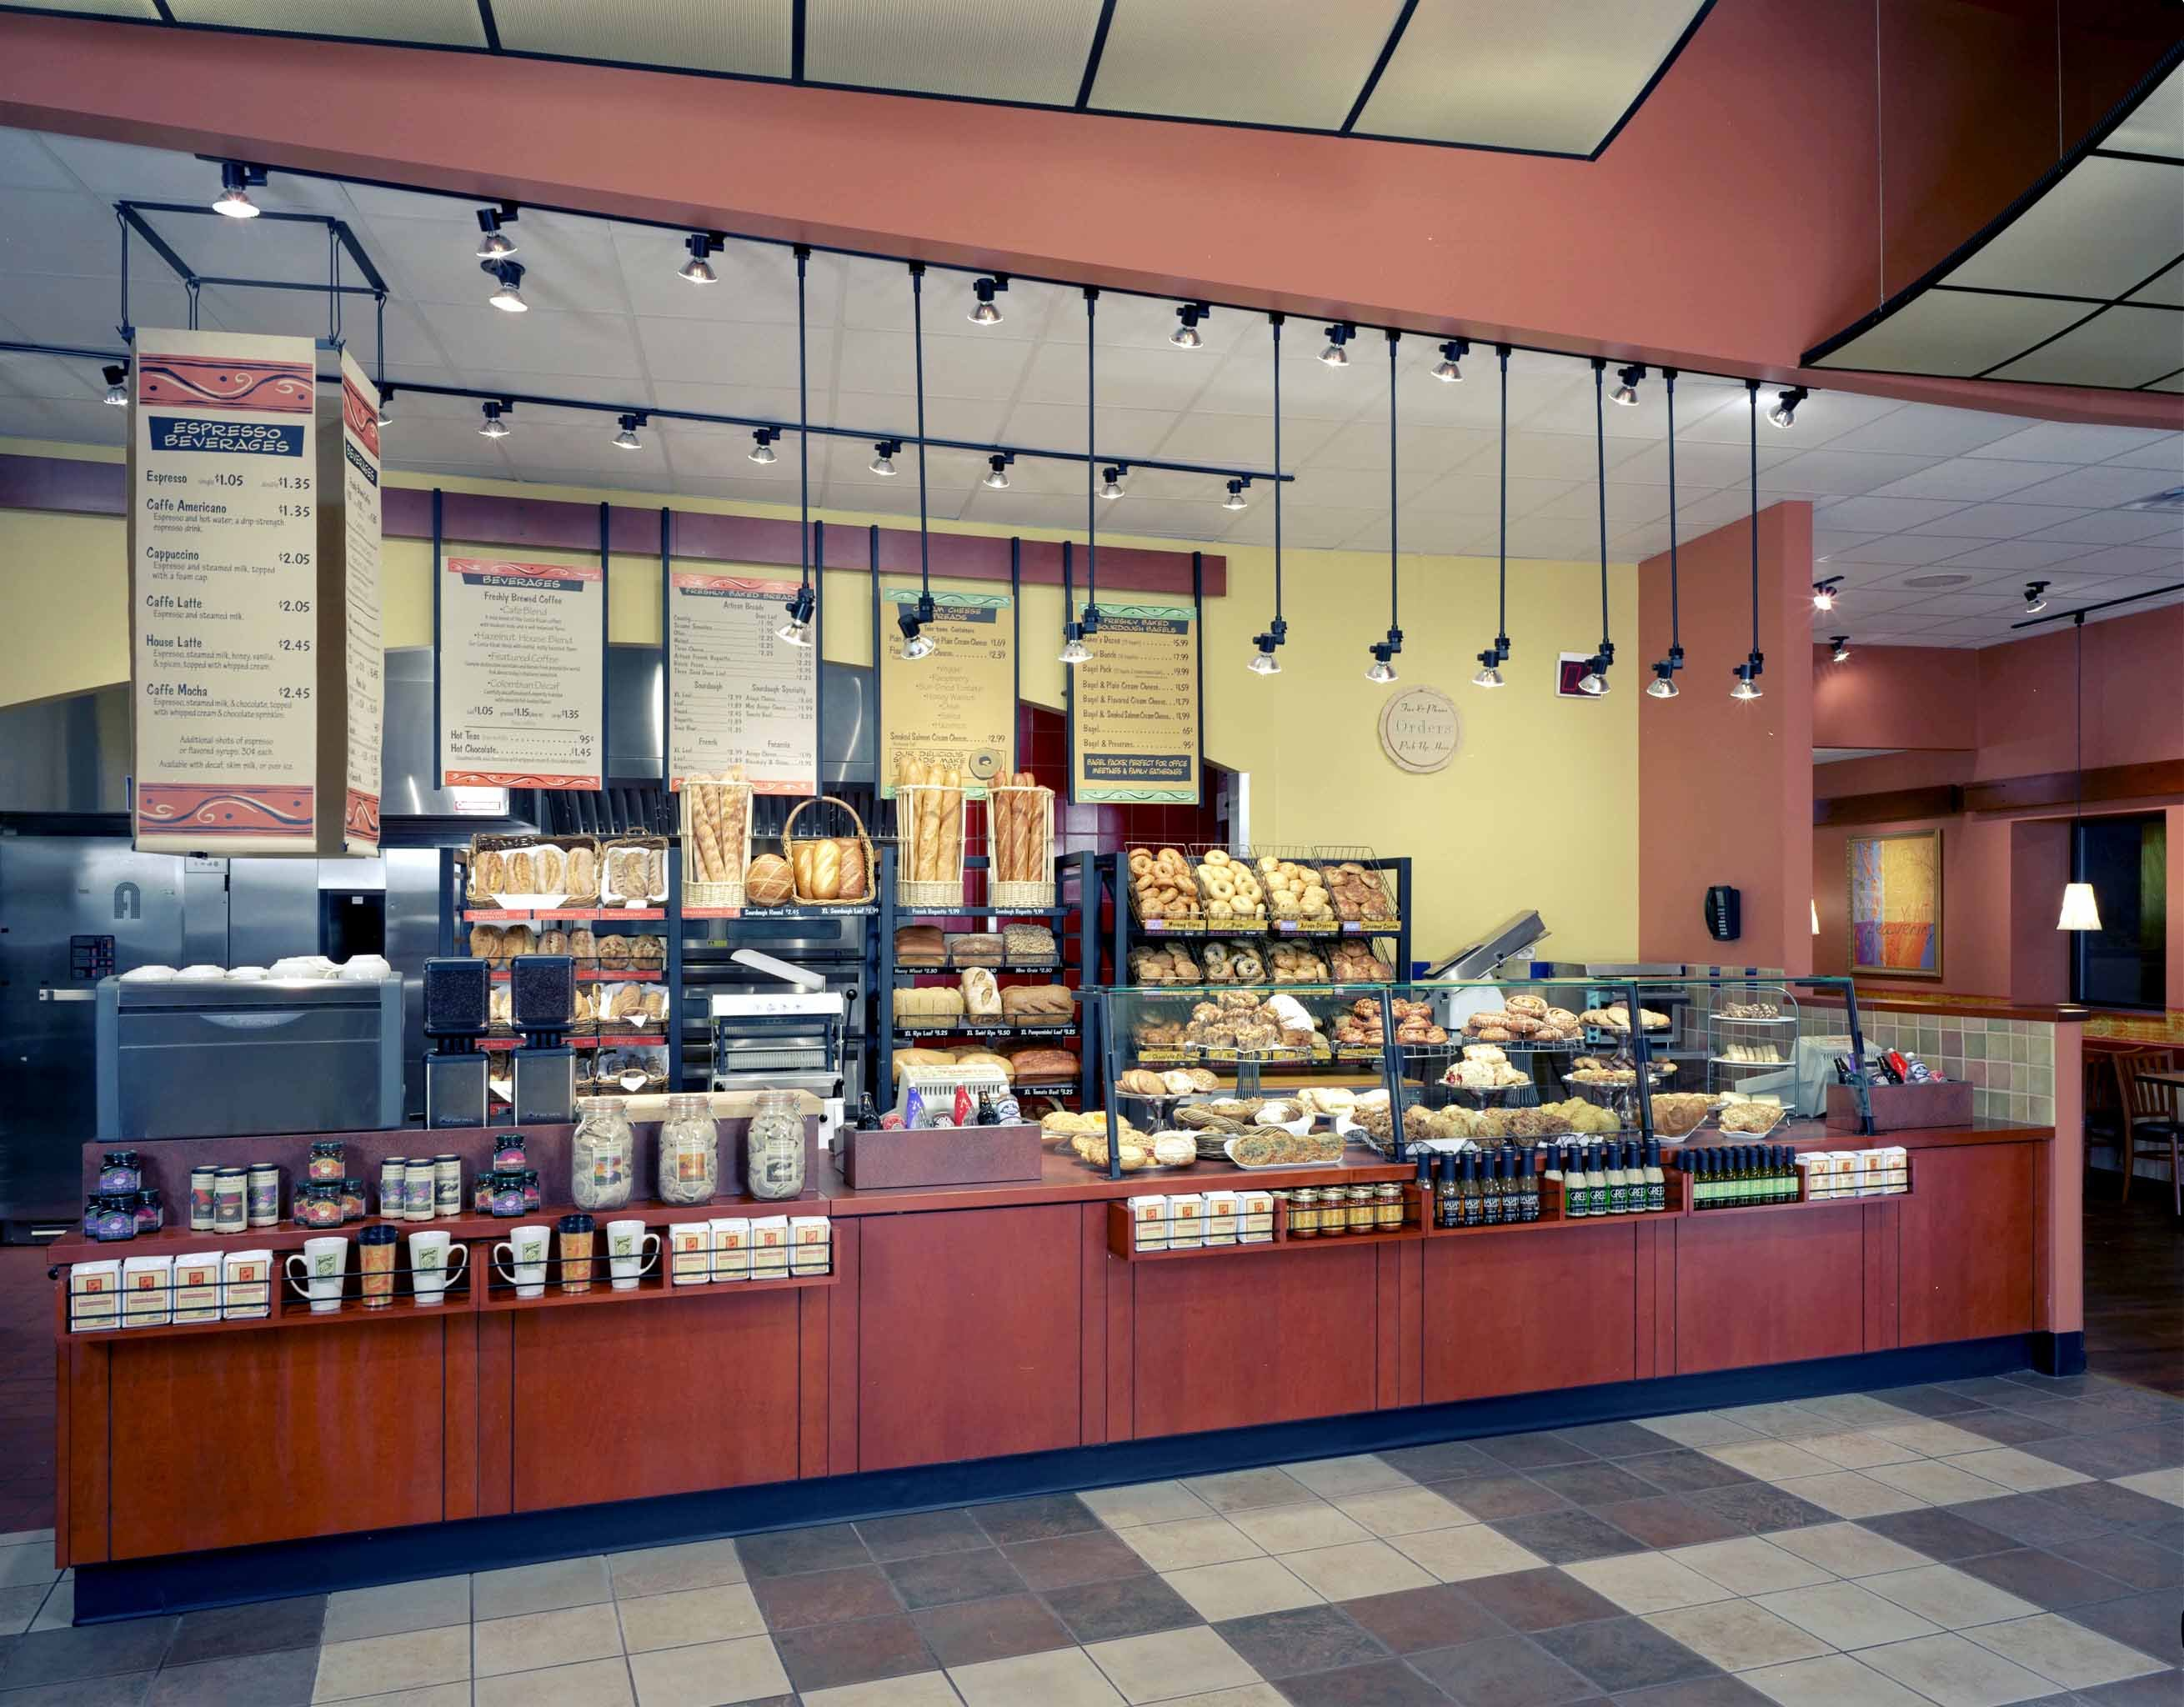 Panera Bread Franchise To Open In Midland WNEM TV 5